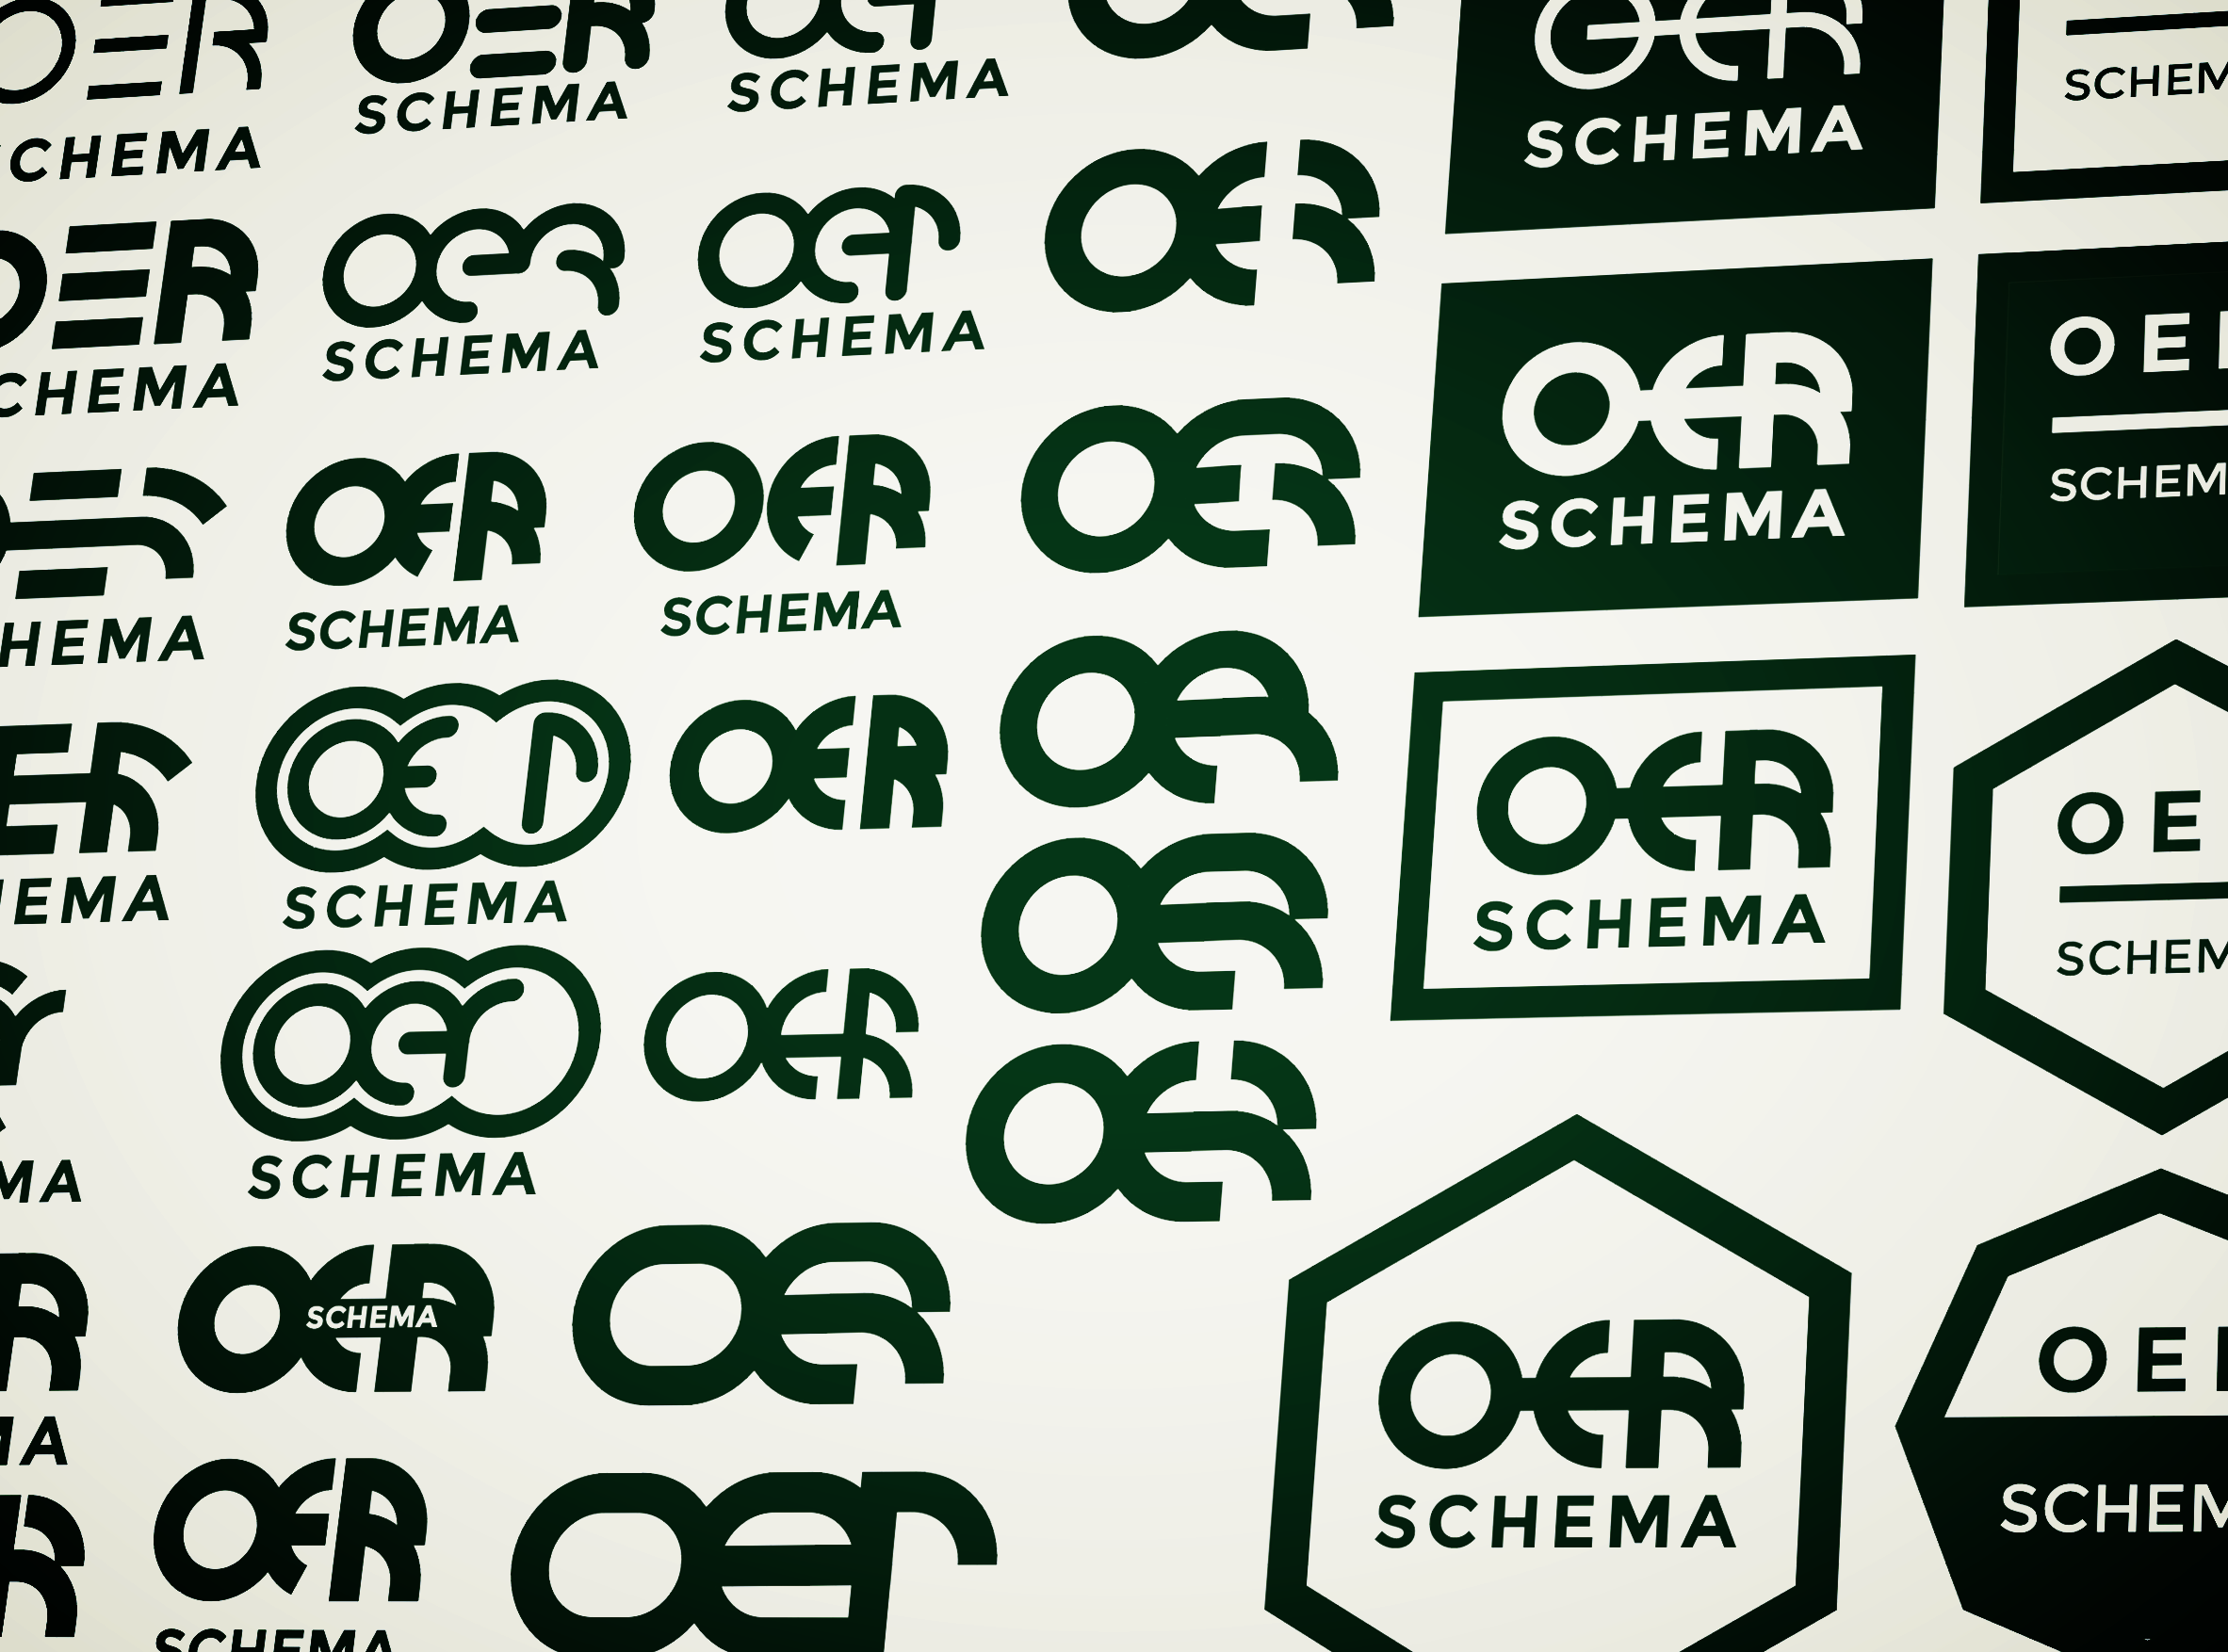 OER logo development sheet